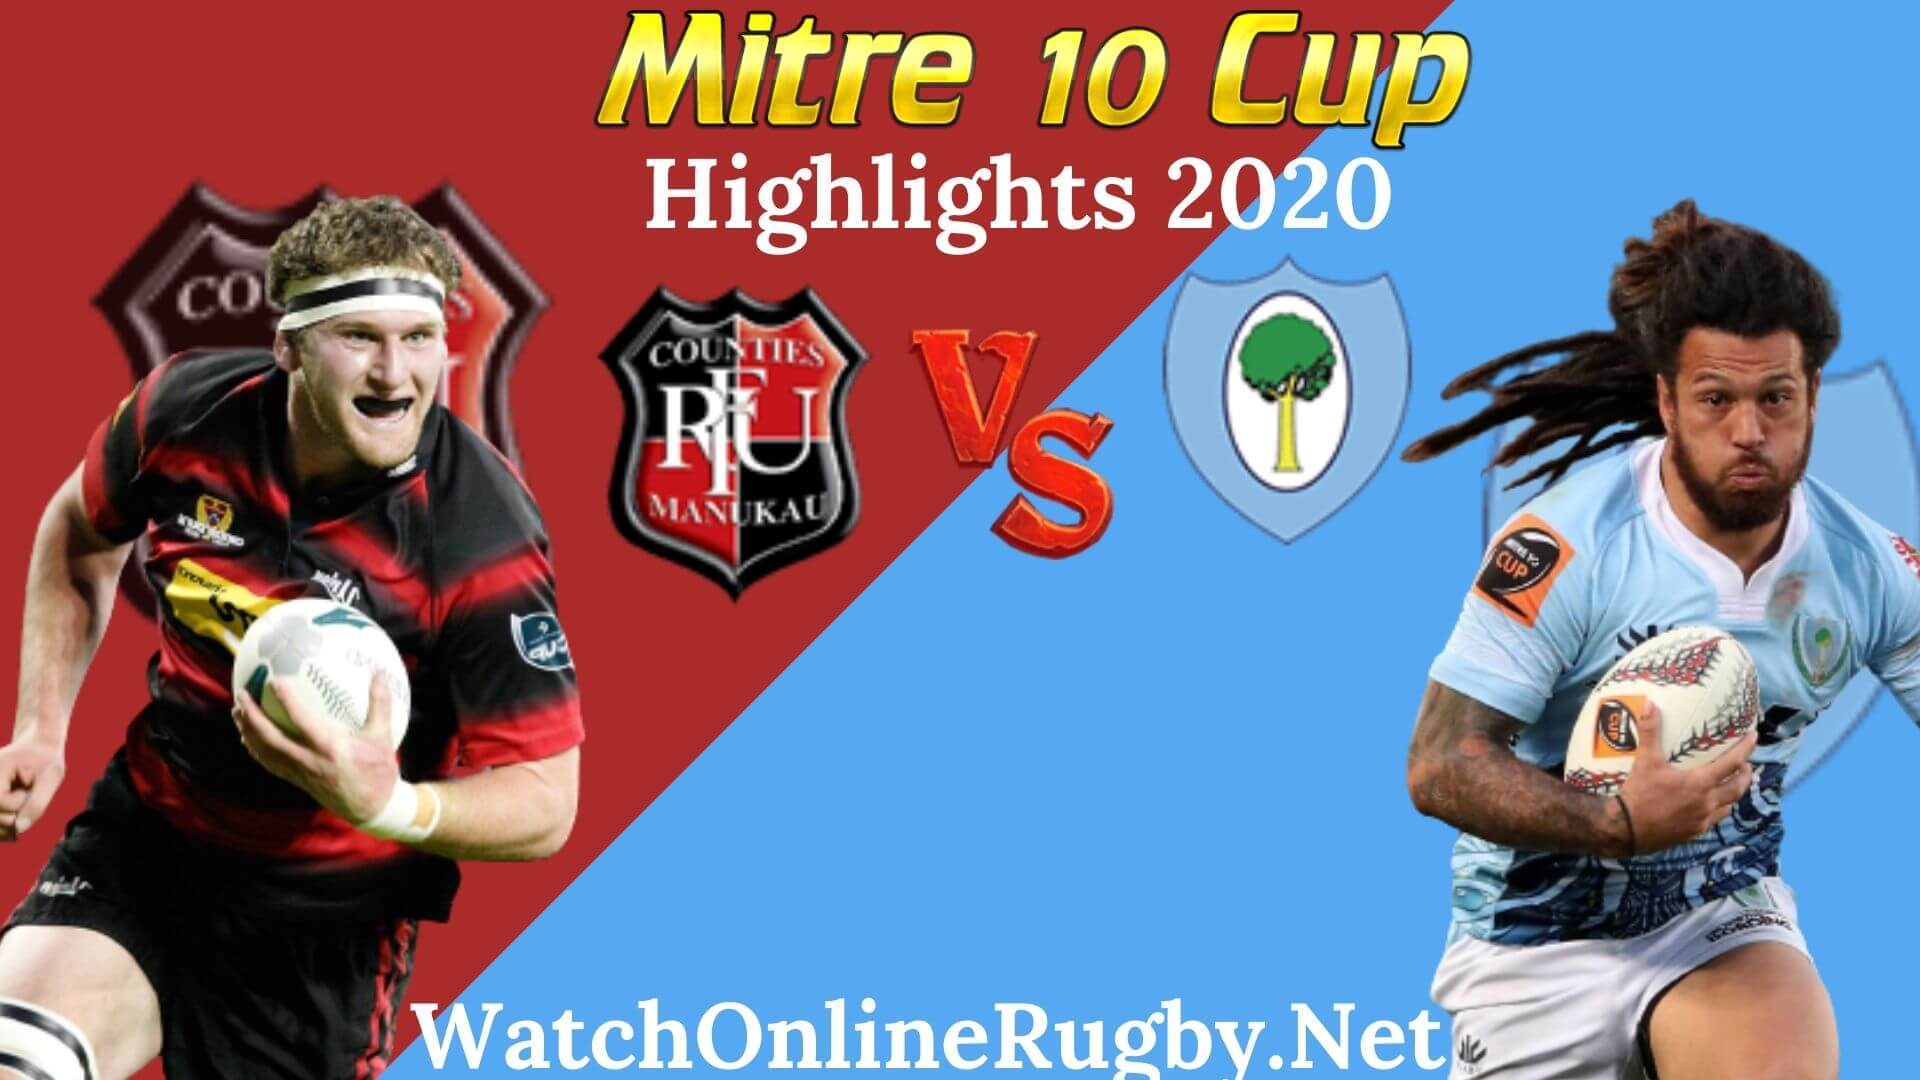 Counties Manukau vs Northland RD 3 Highlights 2020 M10 Cup